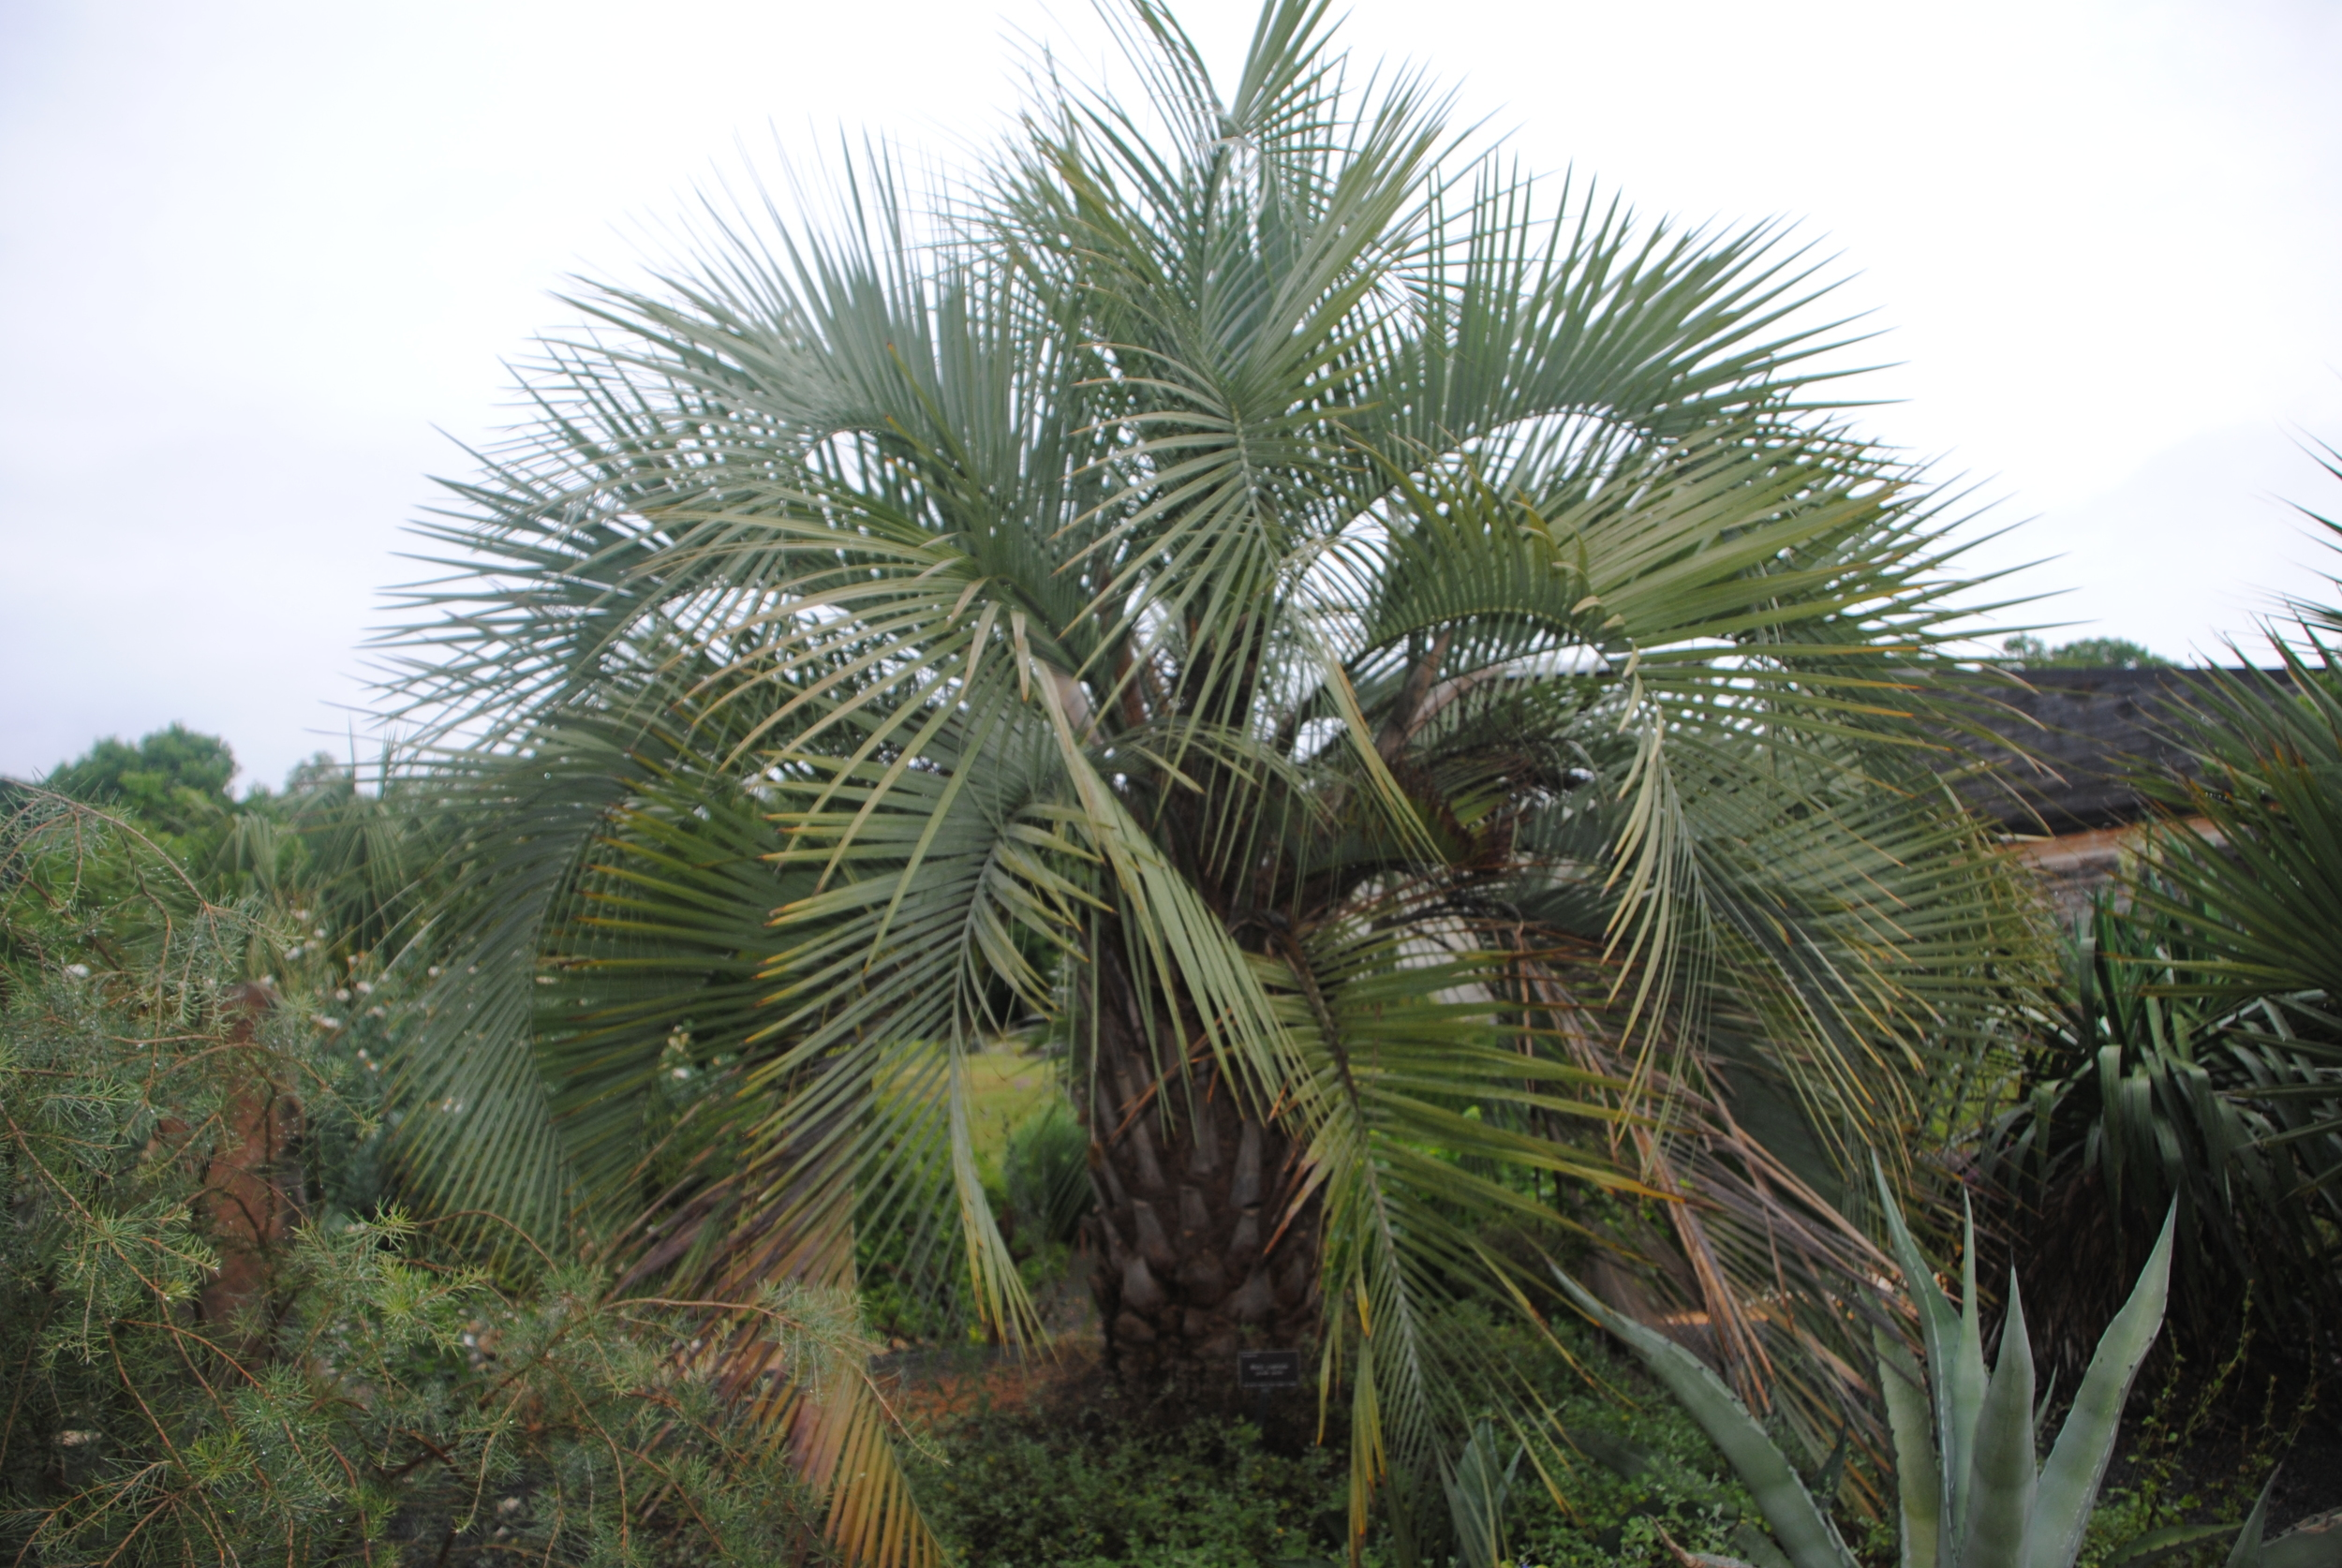 Butia has an imposing presence in the landscape.